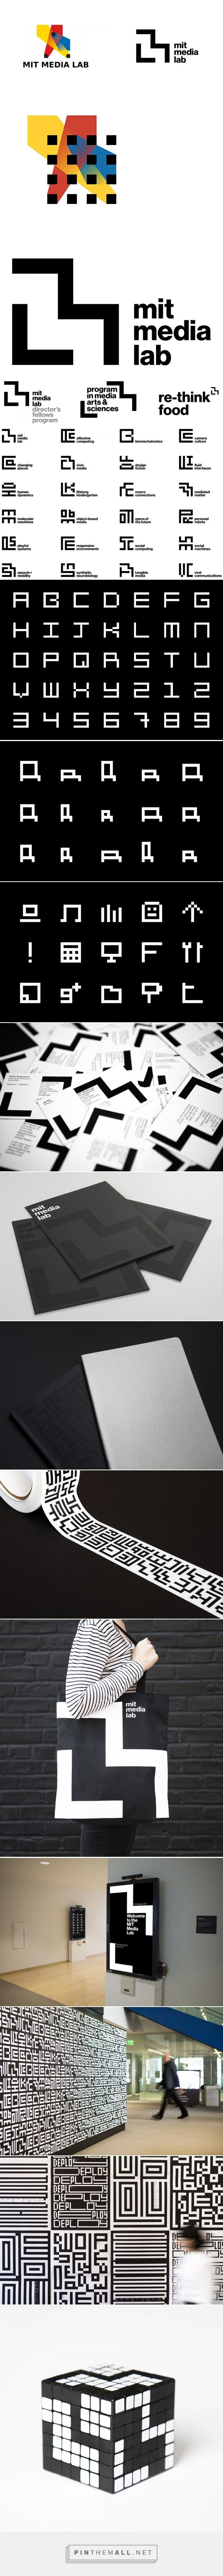 Brand New: New Logo and Identity for MIT Media Lab by Pentagram - created via https://pinthemall.net